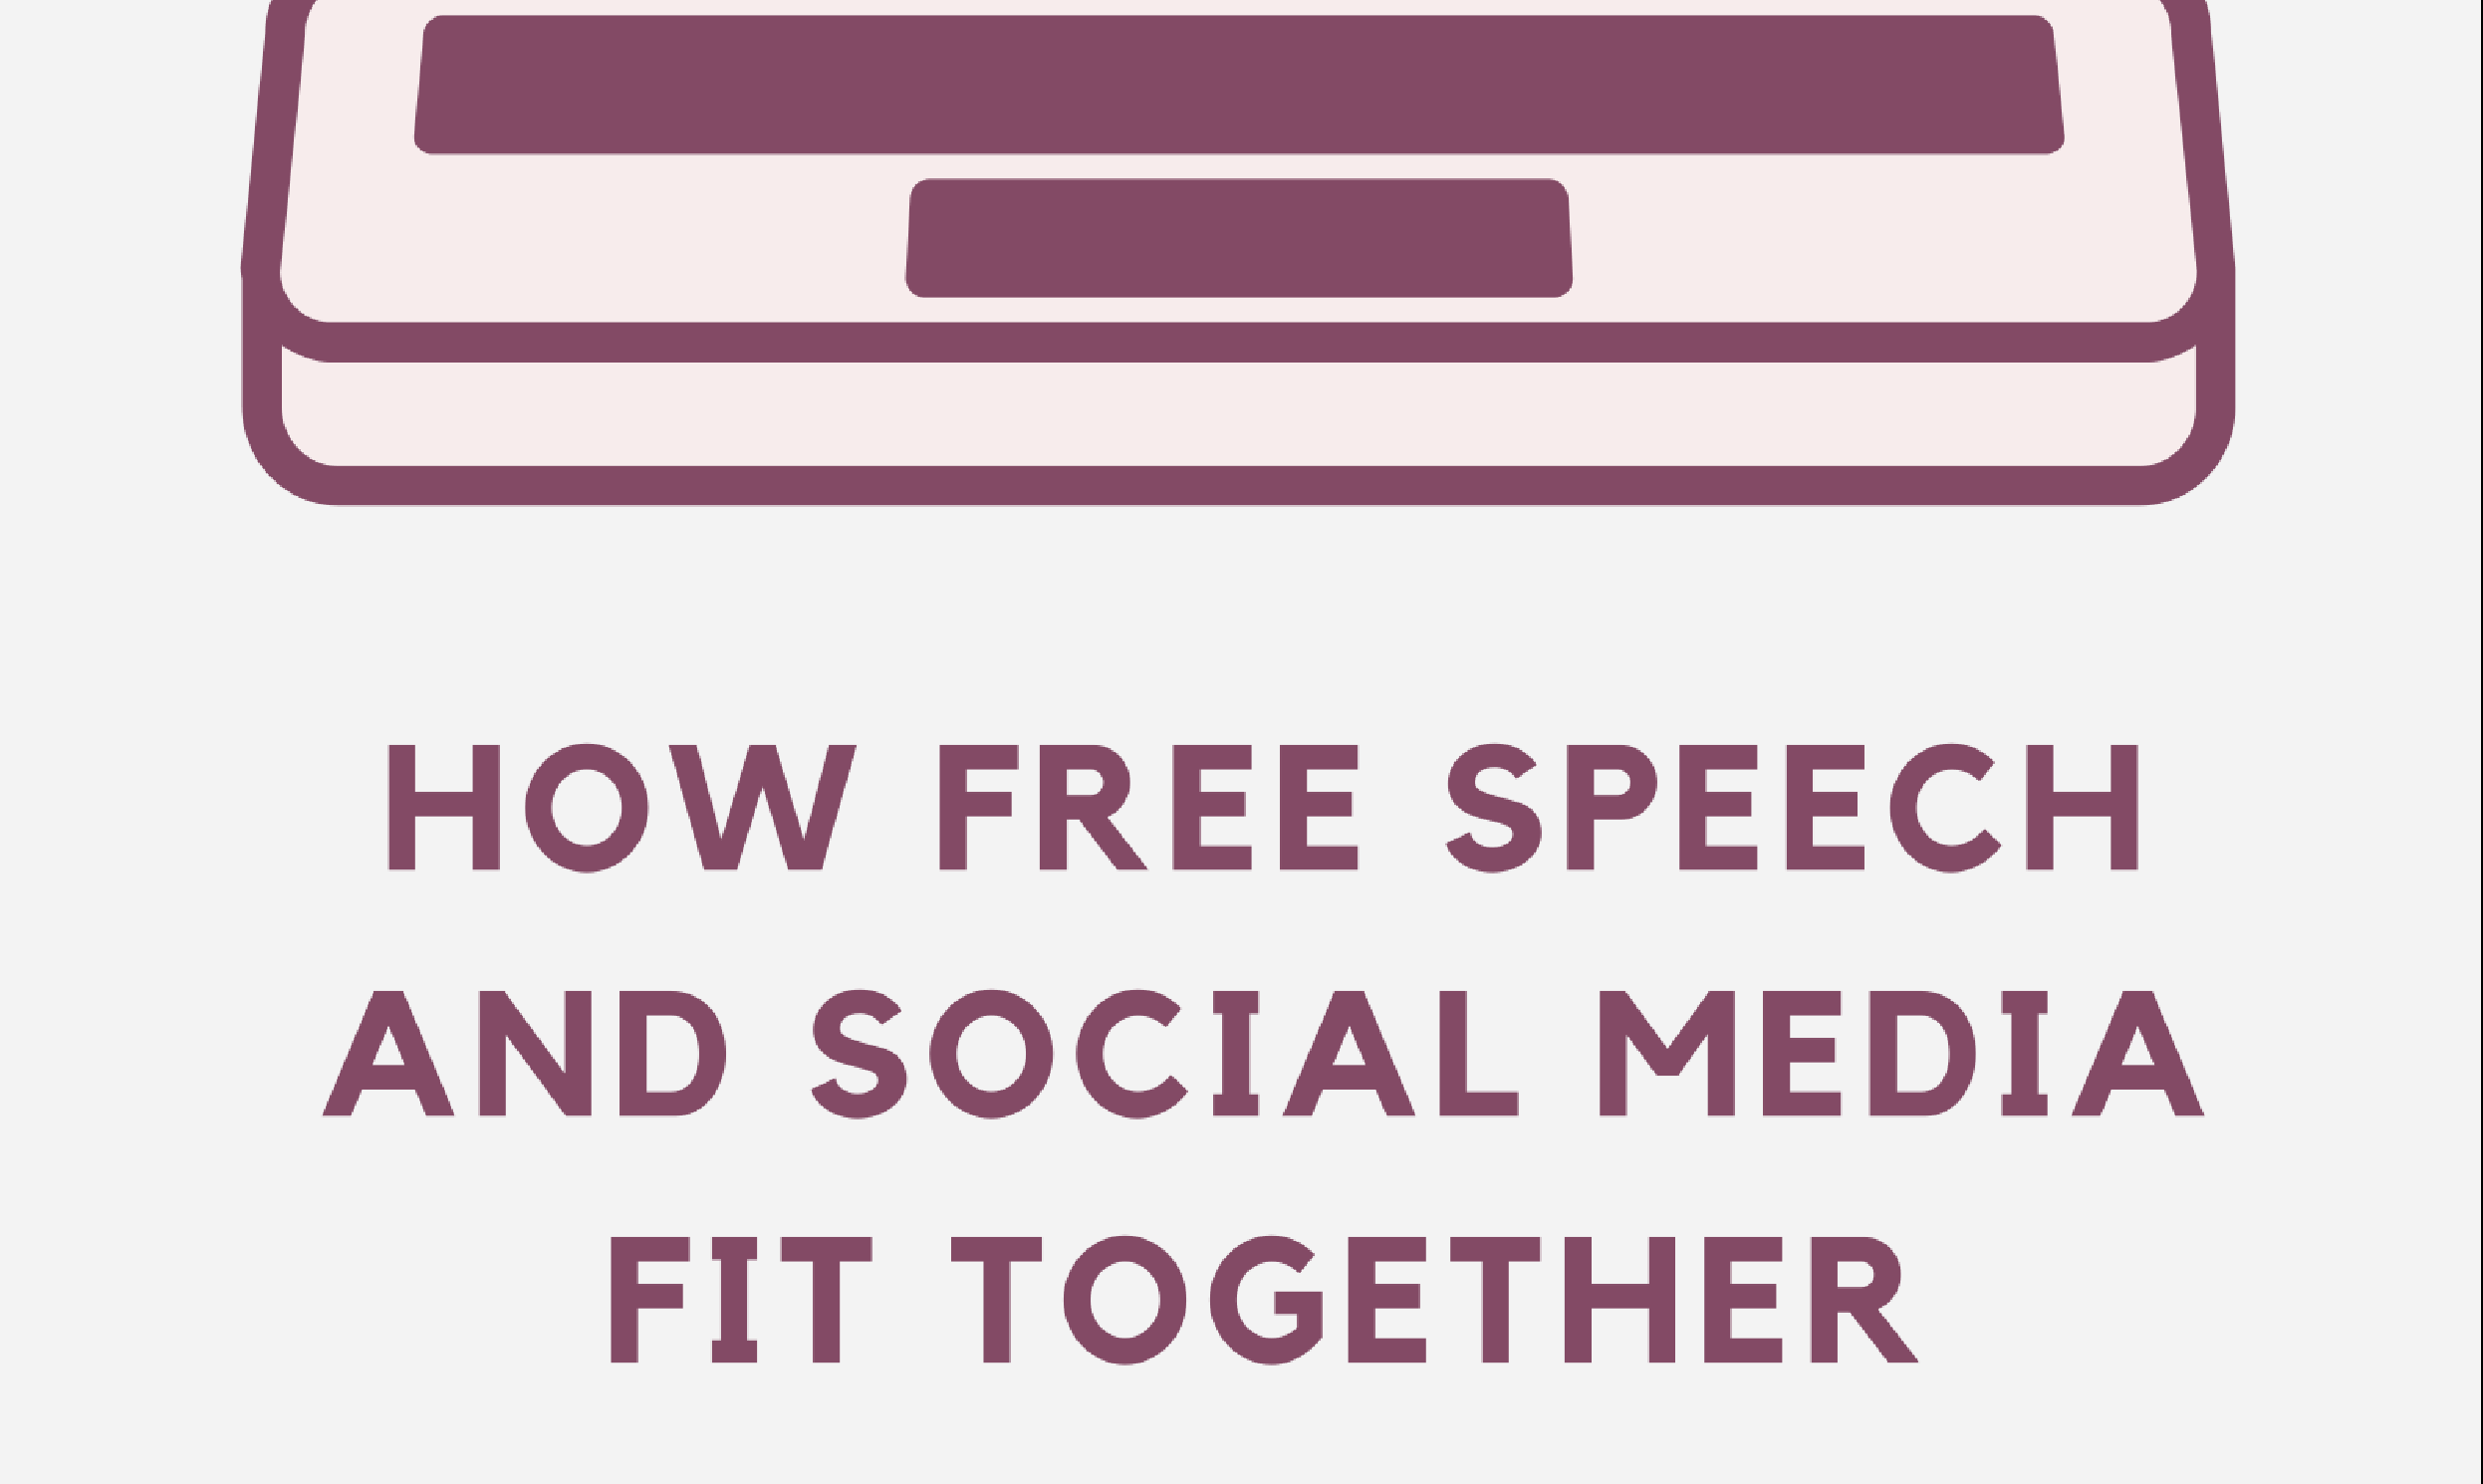 How free speech and social media fit together